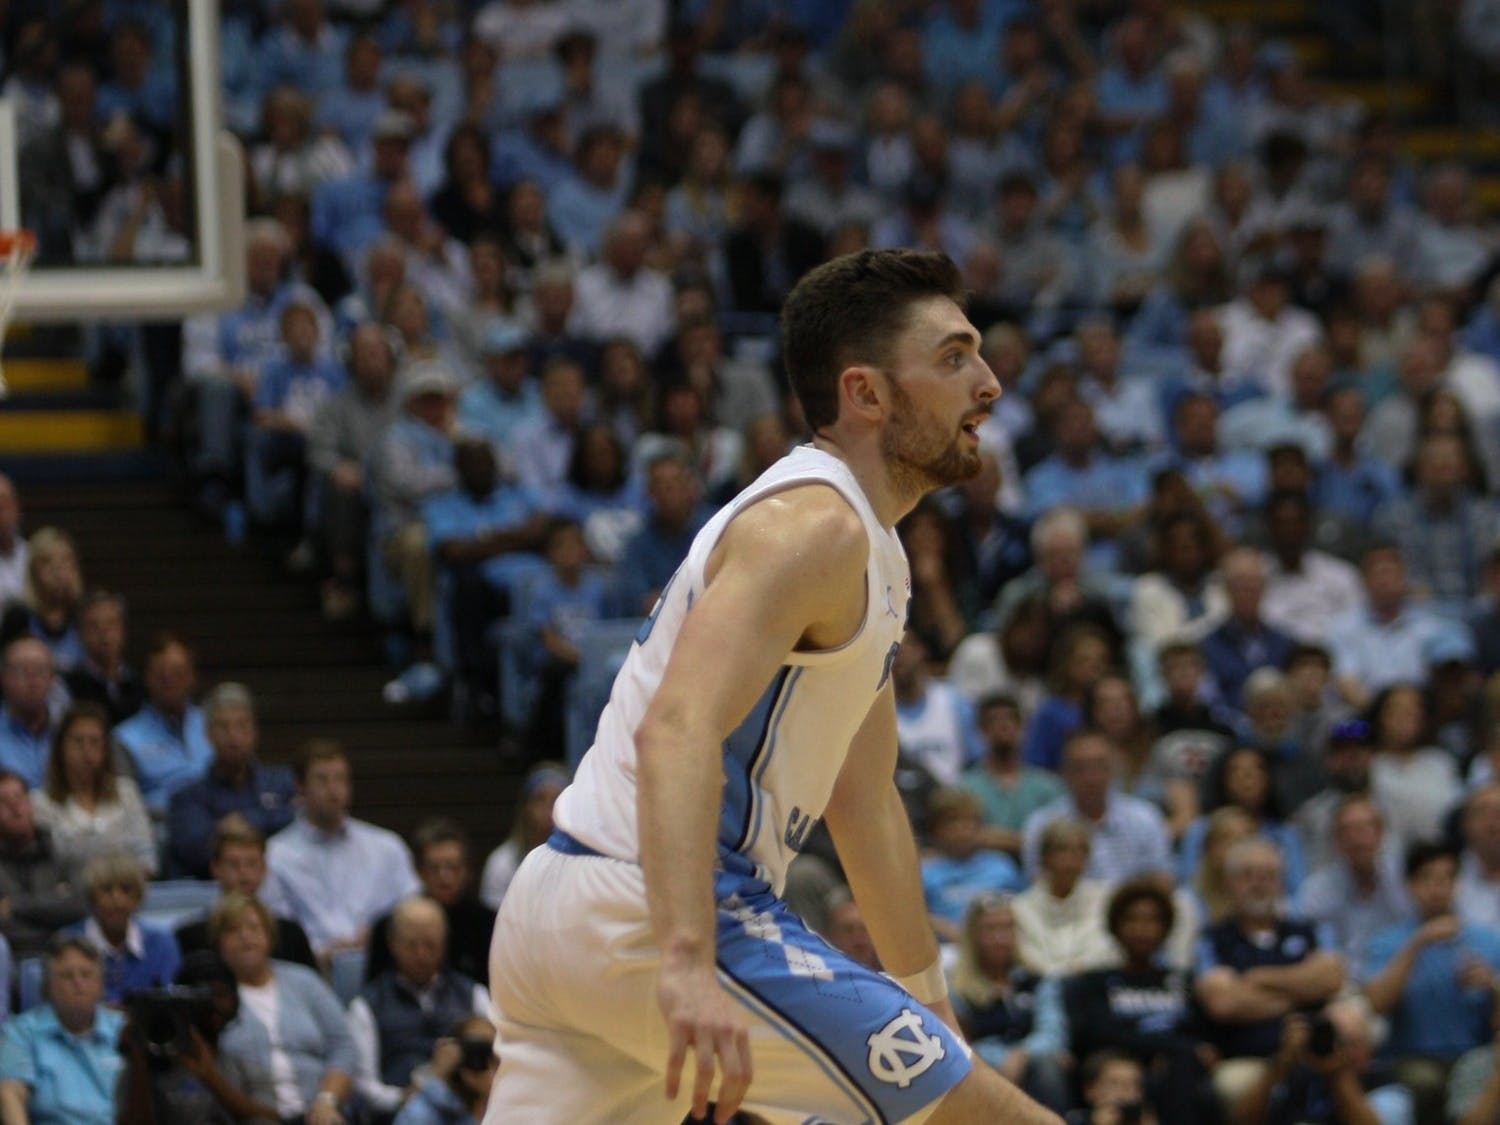 UNC guard Andrew Platek (3) dribbles the ball during the Notre Dame game on Wednesday, Nov. 6, 2019 in the Dean E. Smith Center. The Tar Heels beat the Fighting Irish 76-65.